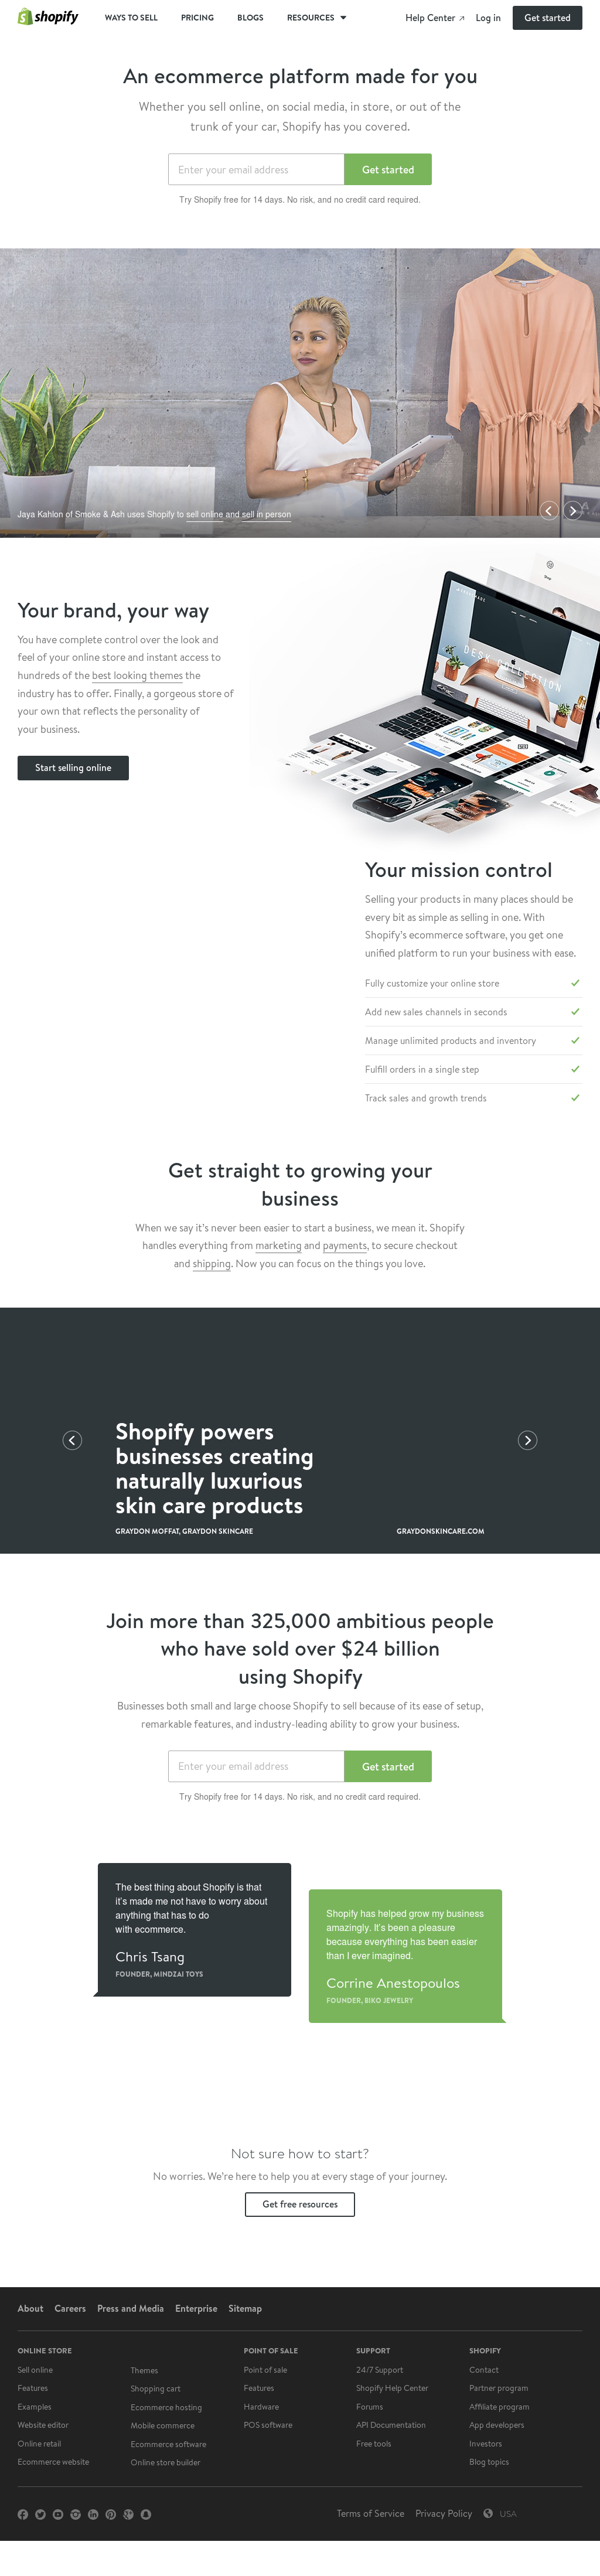 Shopify Competitors, Revenue and Employees - Owler Company Profile